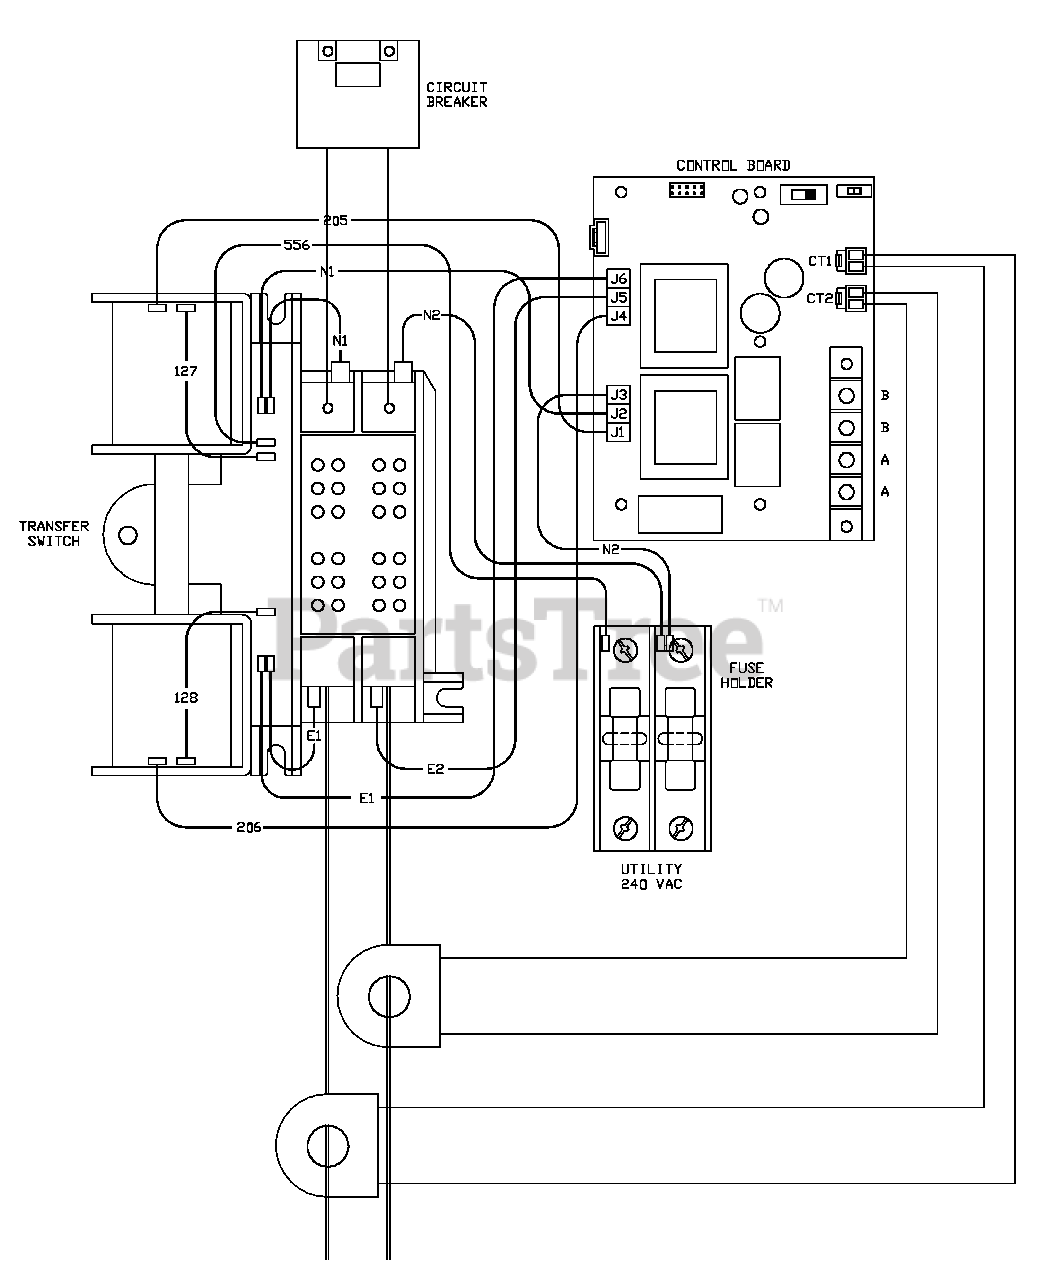 Diagram  Briggs And Stratton Transfer Switch Wiring Diagram Full Version Hd Quality Wiring